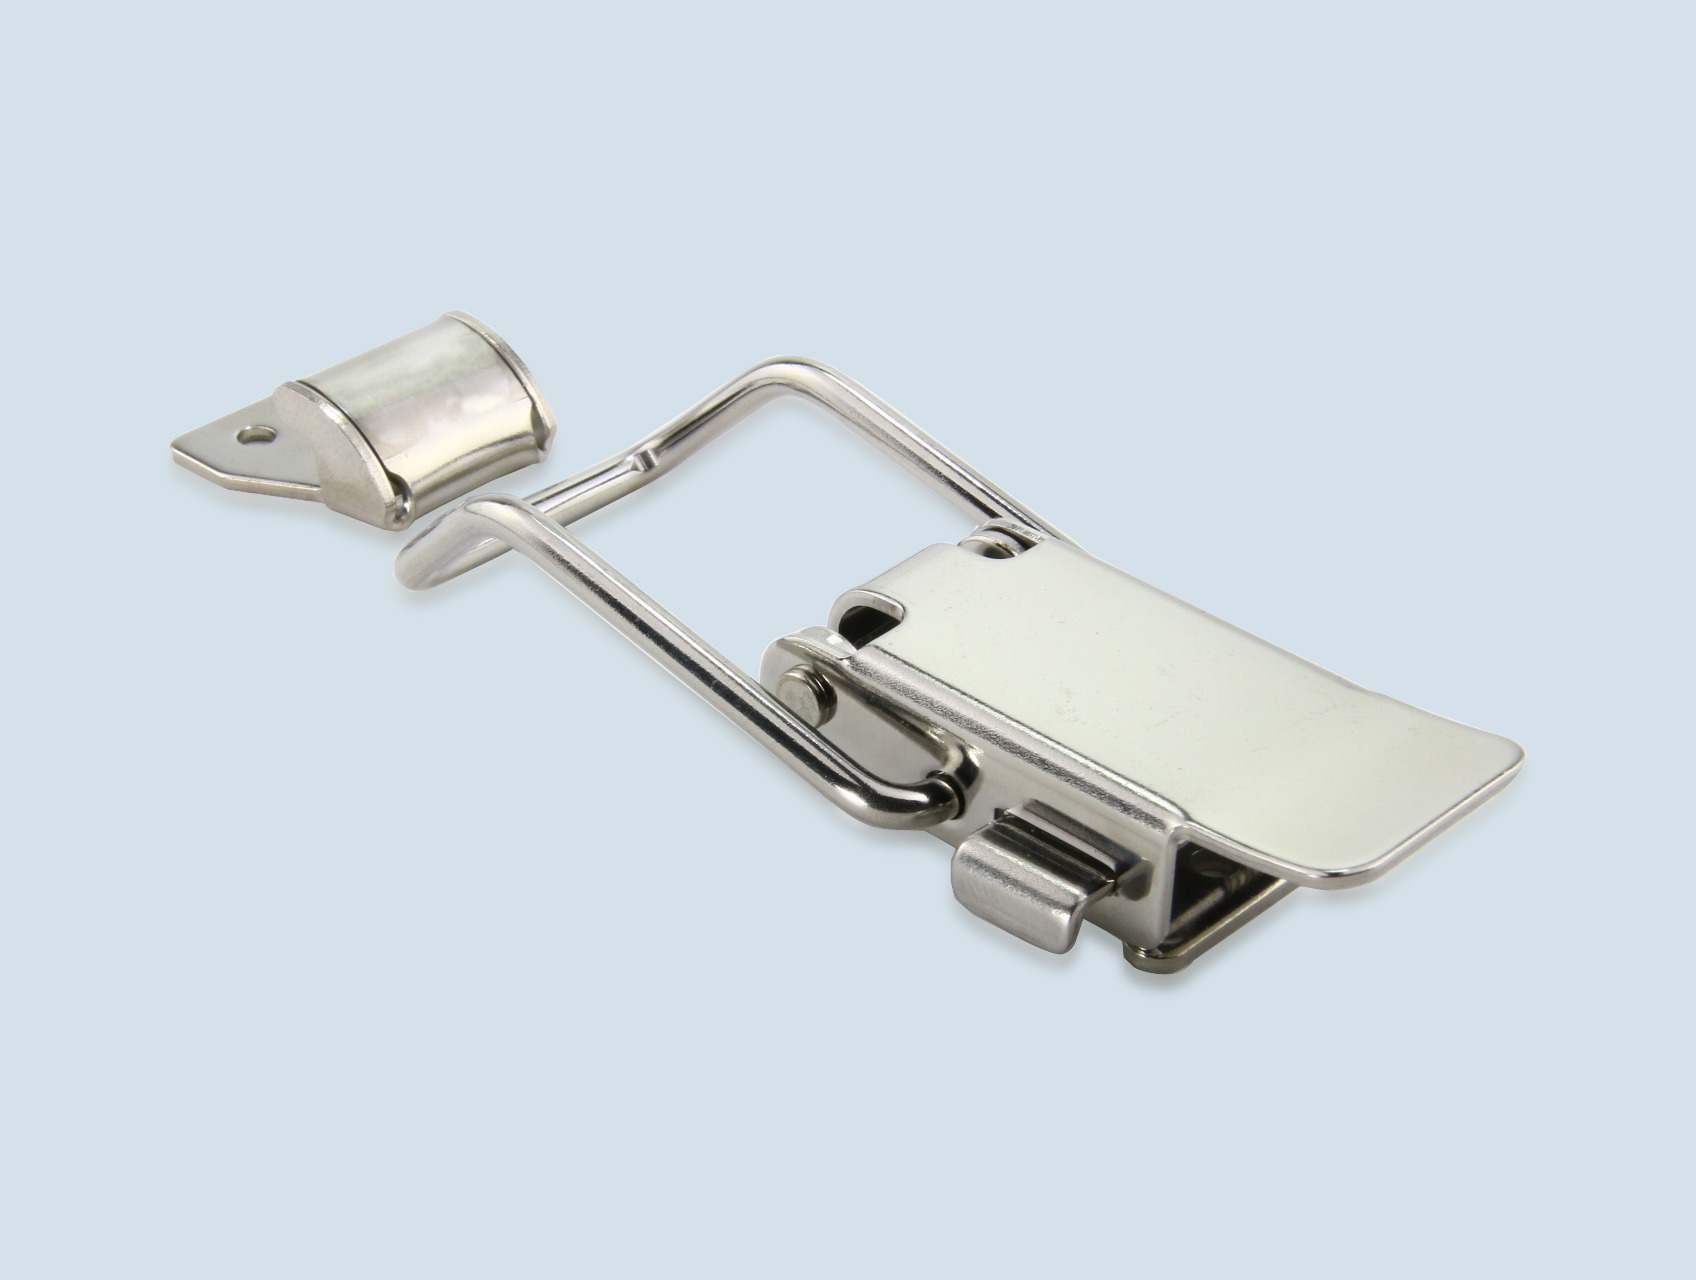 Pull-Down Catch - Lockable